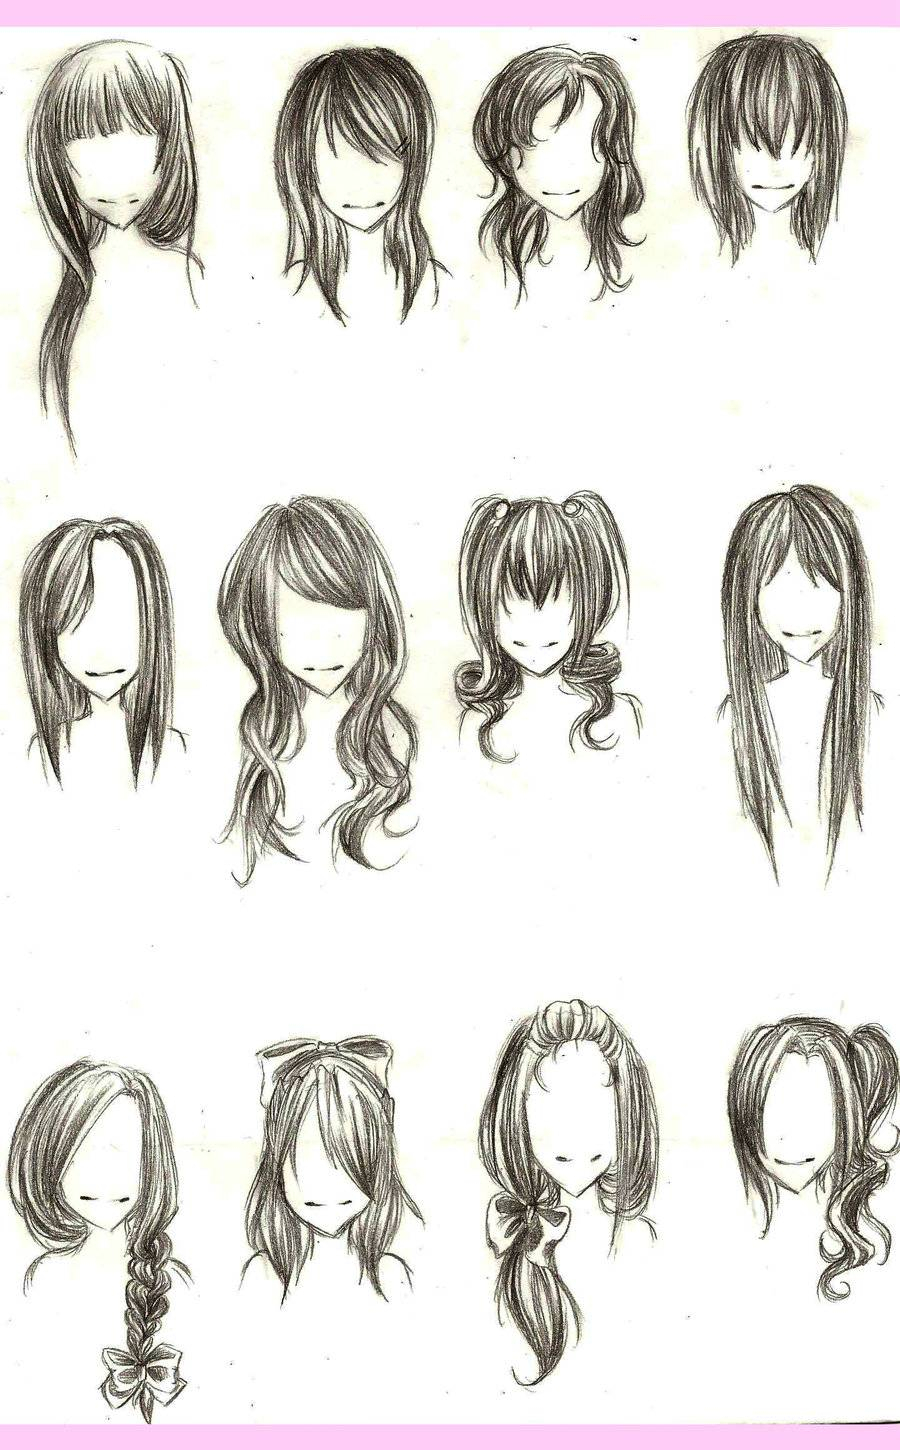 900x1450 Anime Girl Hairstyles Drawings Anime Hairstyles For Girls Sketch